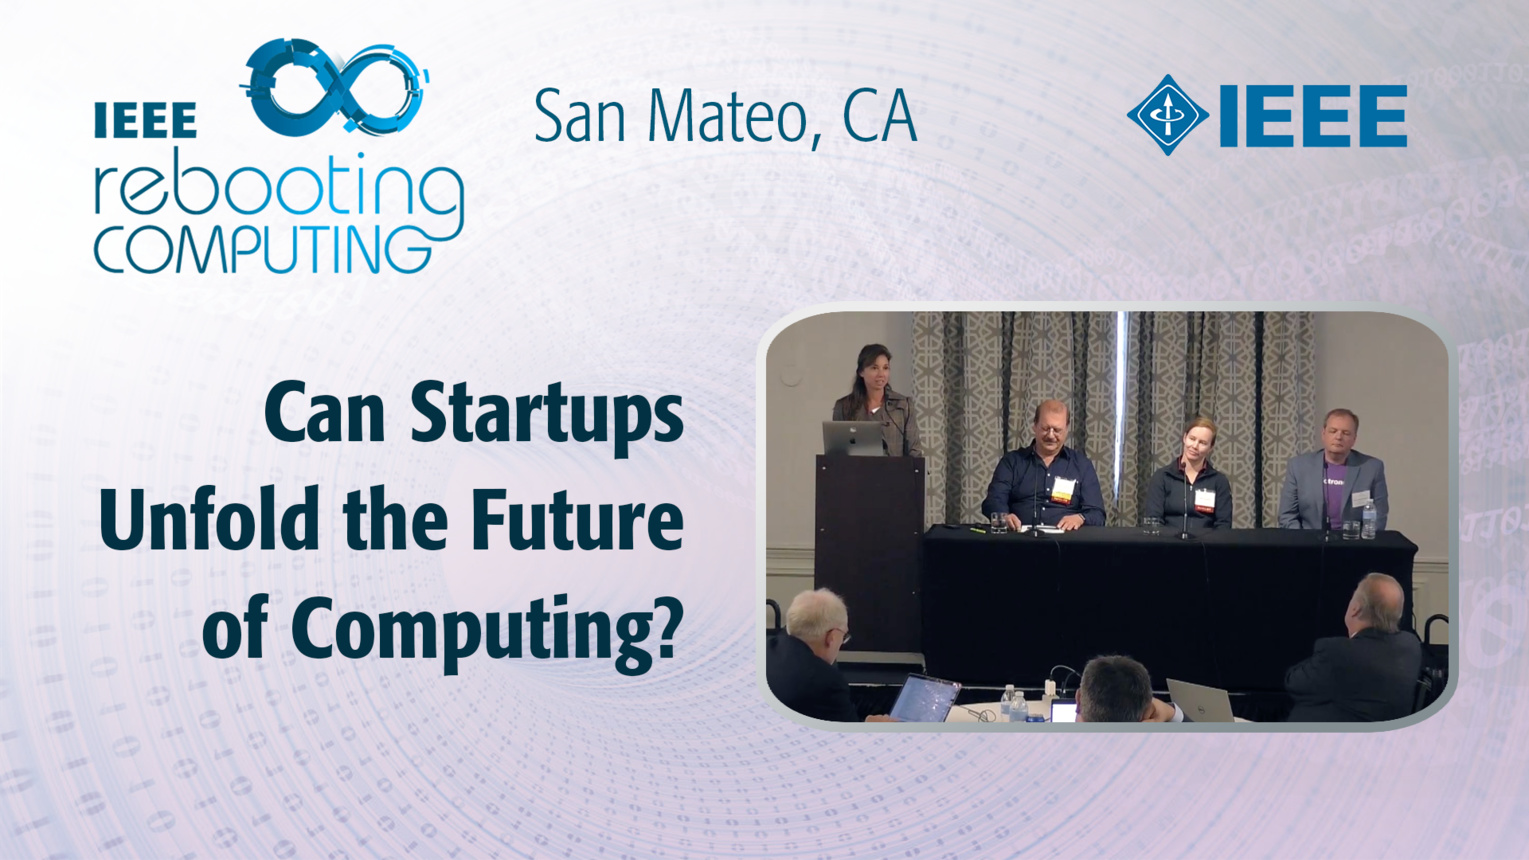 Can Startups Unfold the Future of Computing? - Startup Panel - ICRC San Mateo, 2019